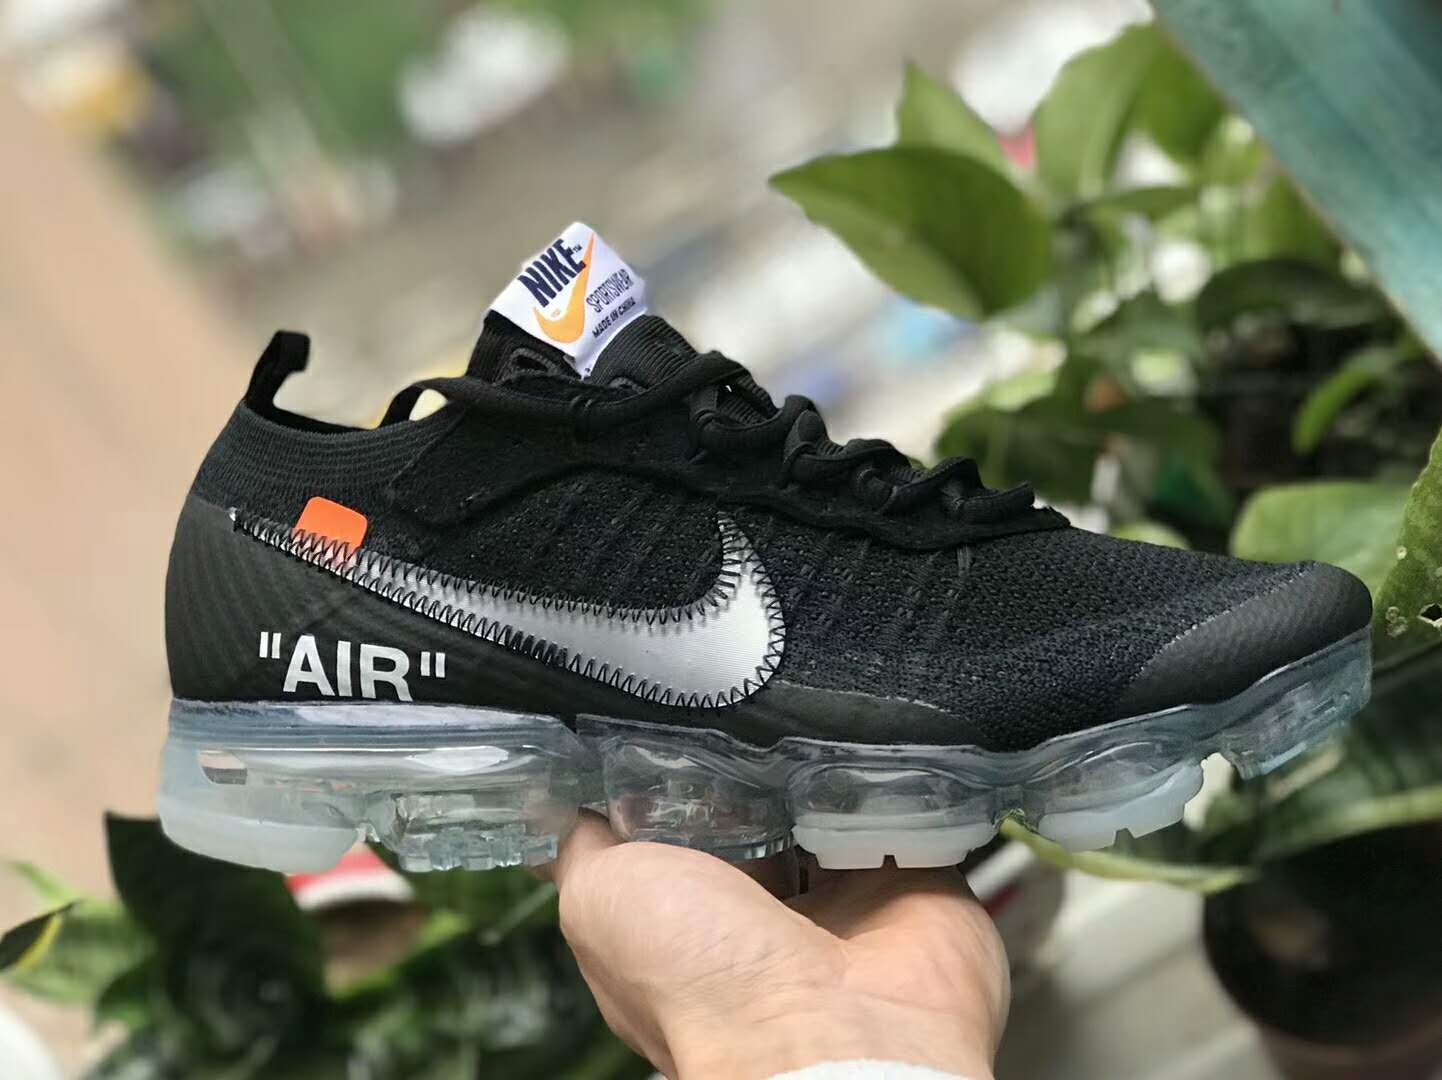 2a5f36e398 Off-White x Nike Air VaporMax 2018 Black AA3831-002 | Off-White x ...